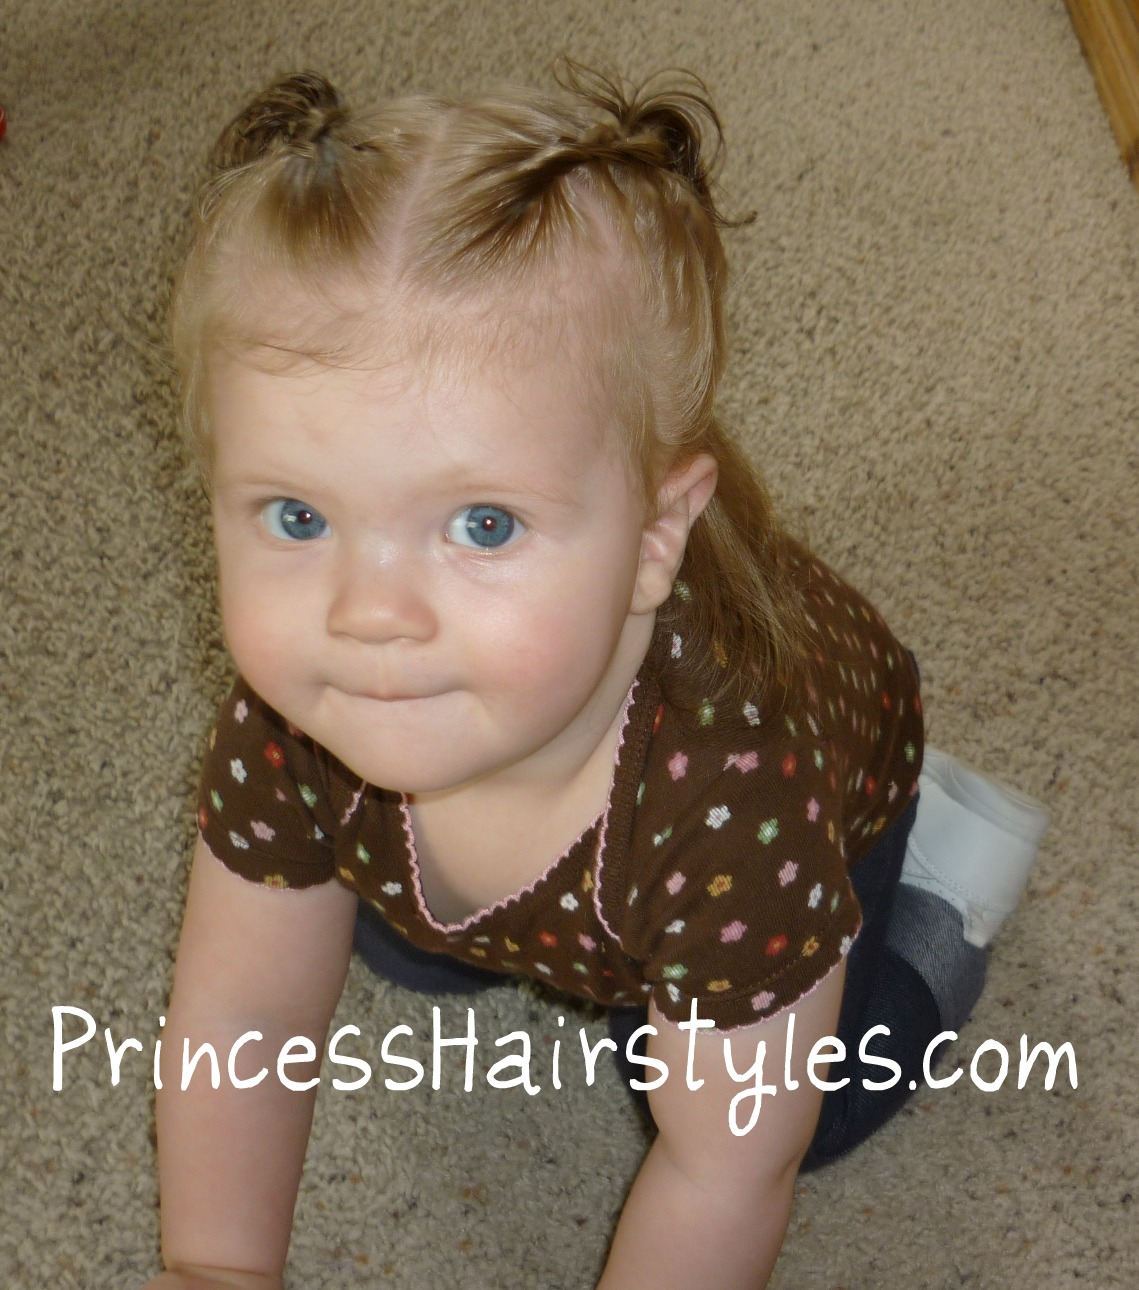 Tiny French Braids  Baby Hairstyles. 1139 x 1290.Hairstyles For Girls Ages 12 13